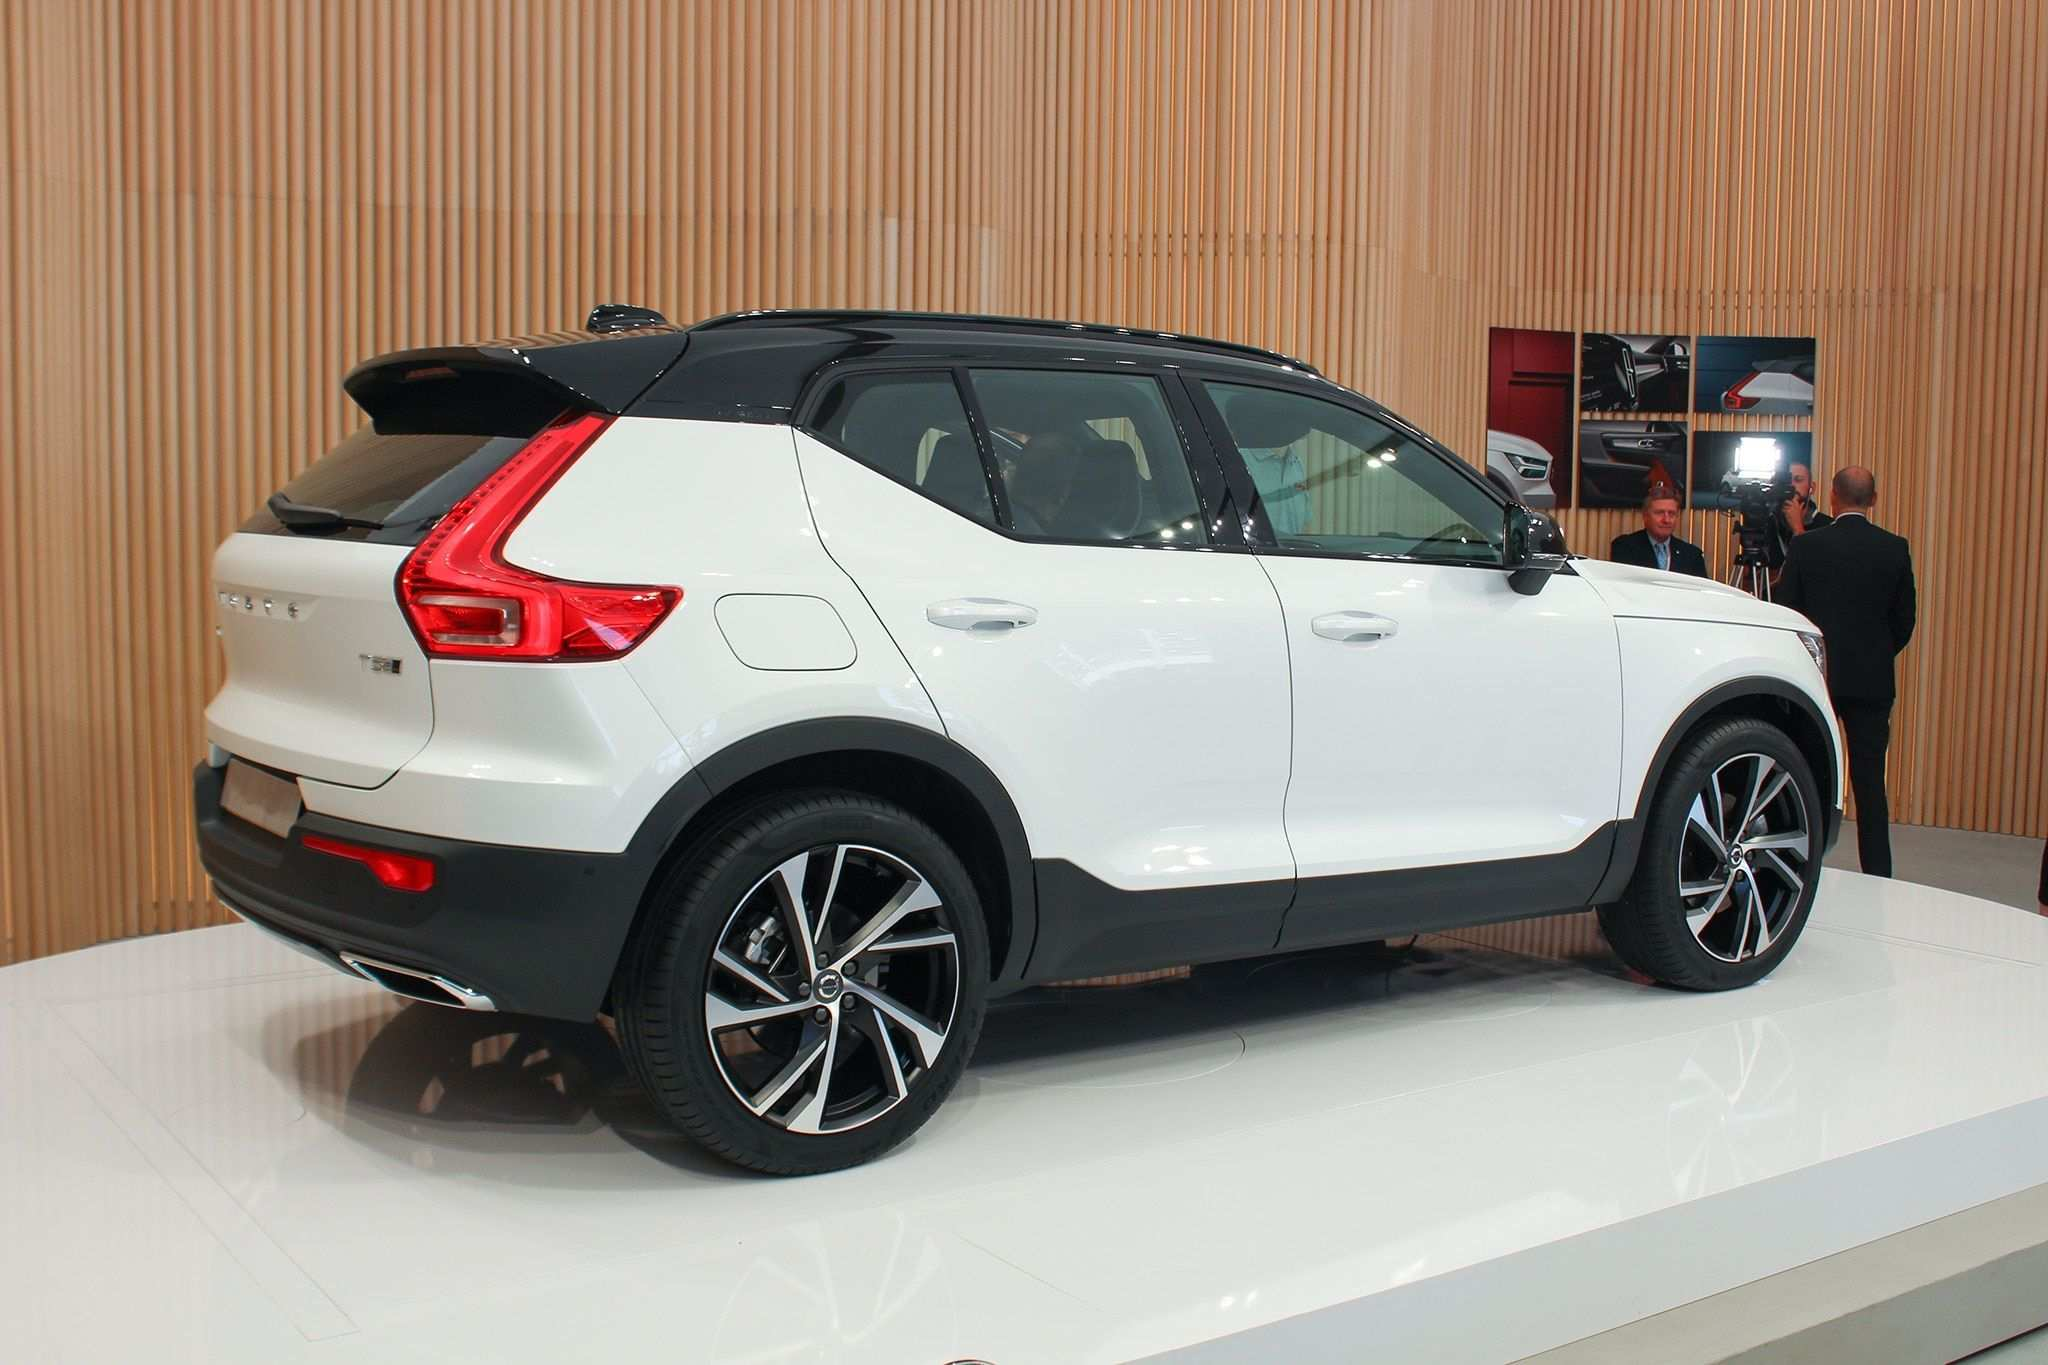 39 Great 2019 Volvo Xc40 Length Images for 2019 Volvo Xc40 Length